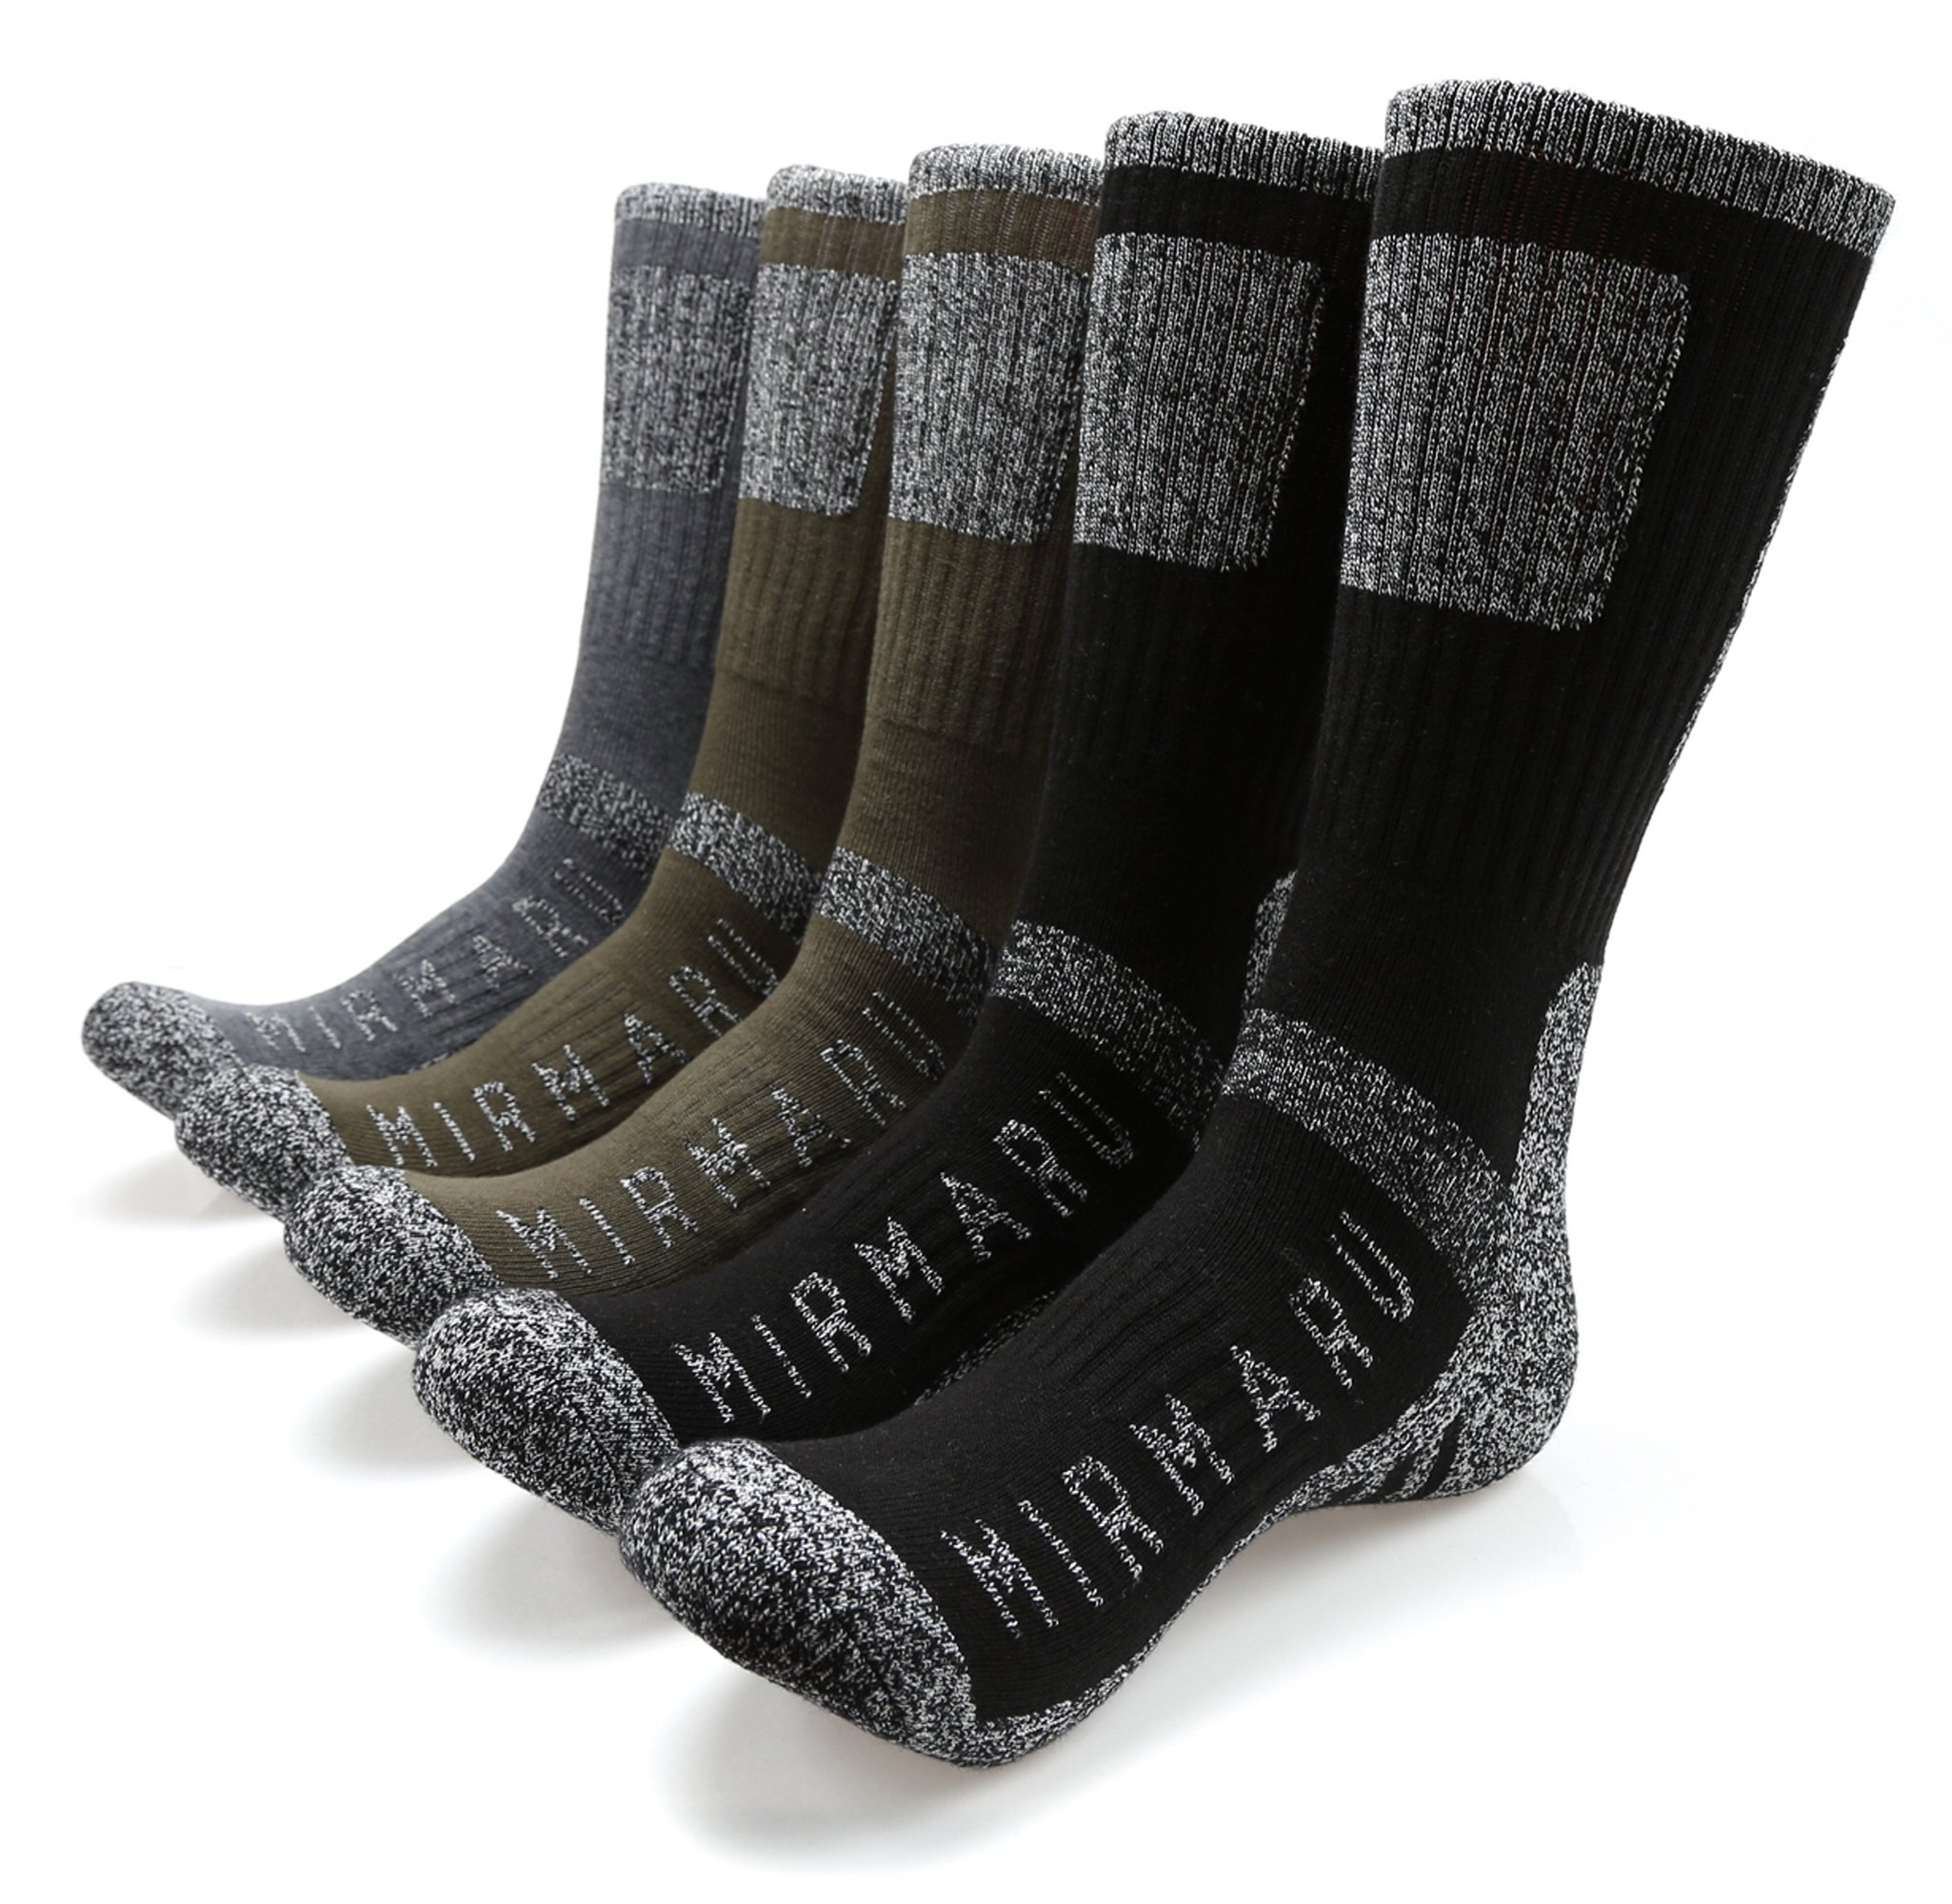 MIRMARU M202-Medium-Men's 5 Pairs Multi Performance Outdoor Sports Hiking Trekking Crew Socks (2Black,2Olive,1Char) by MIRMARU